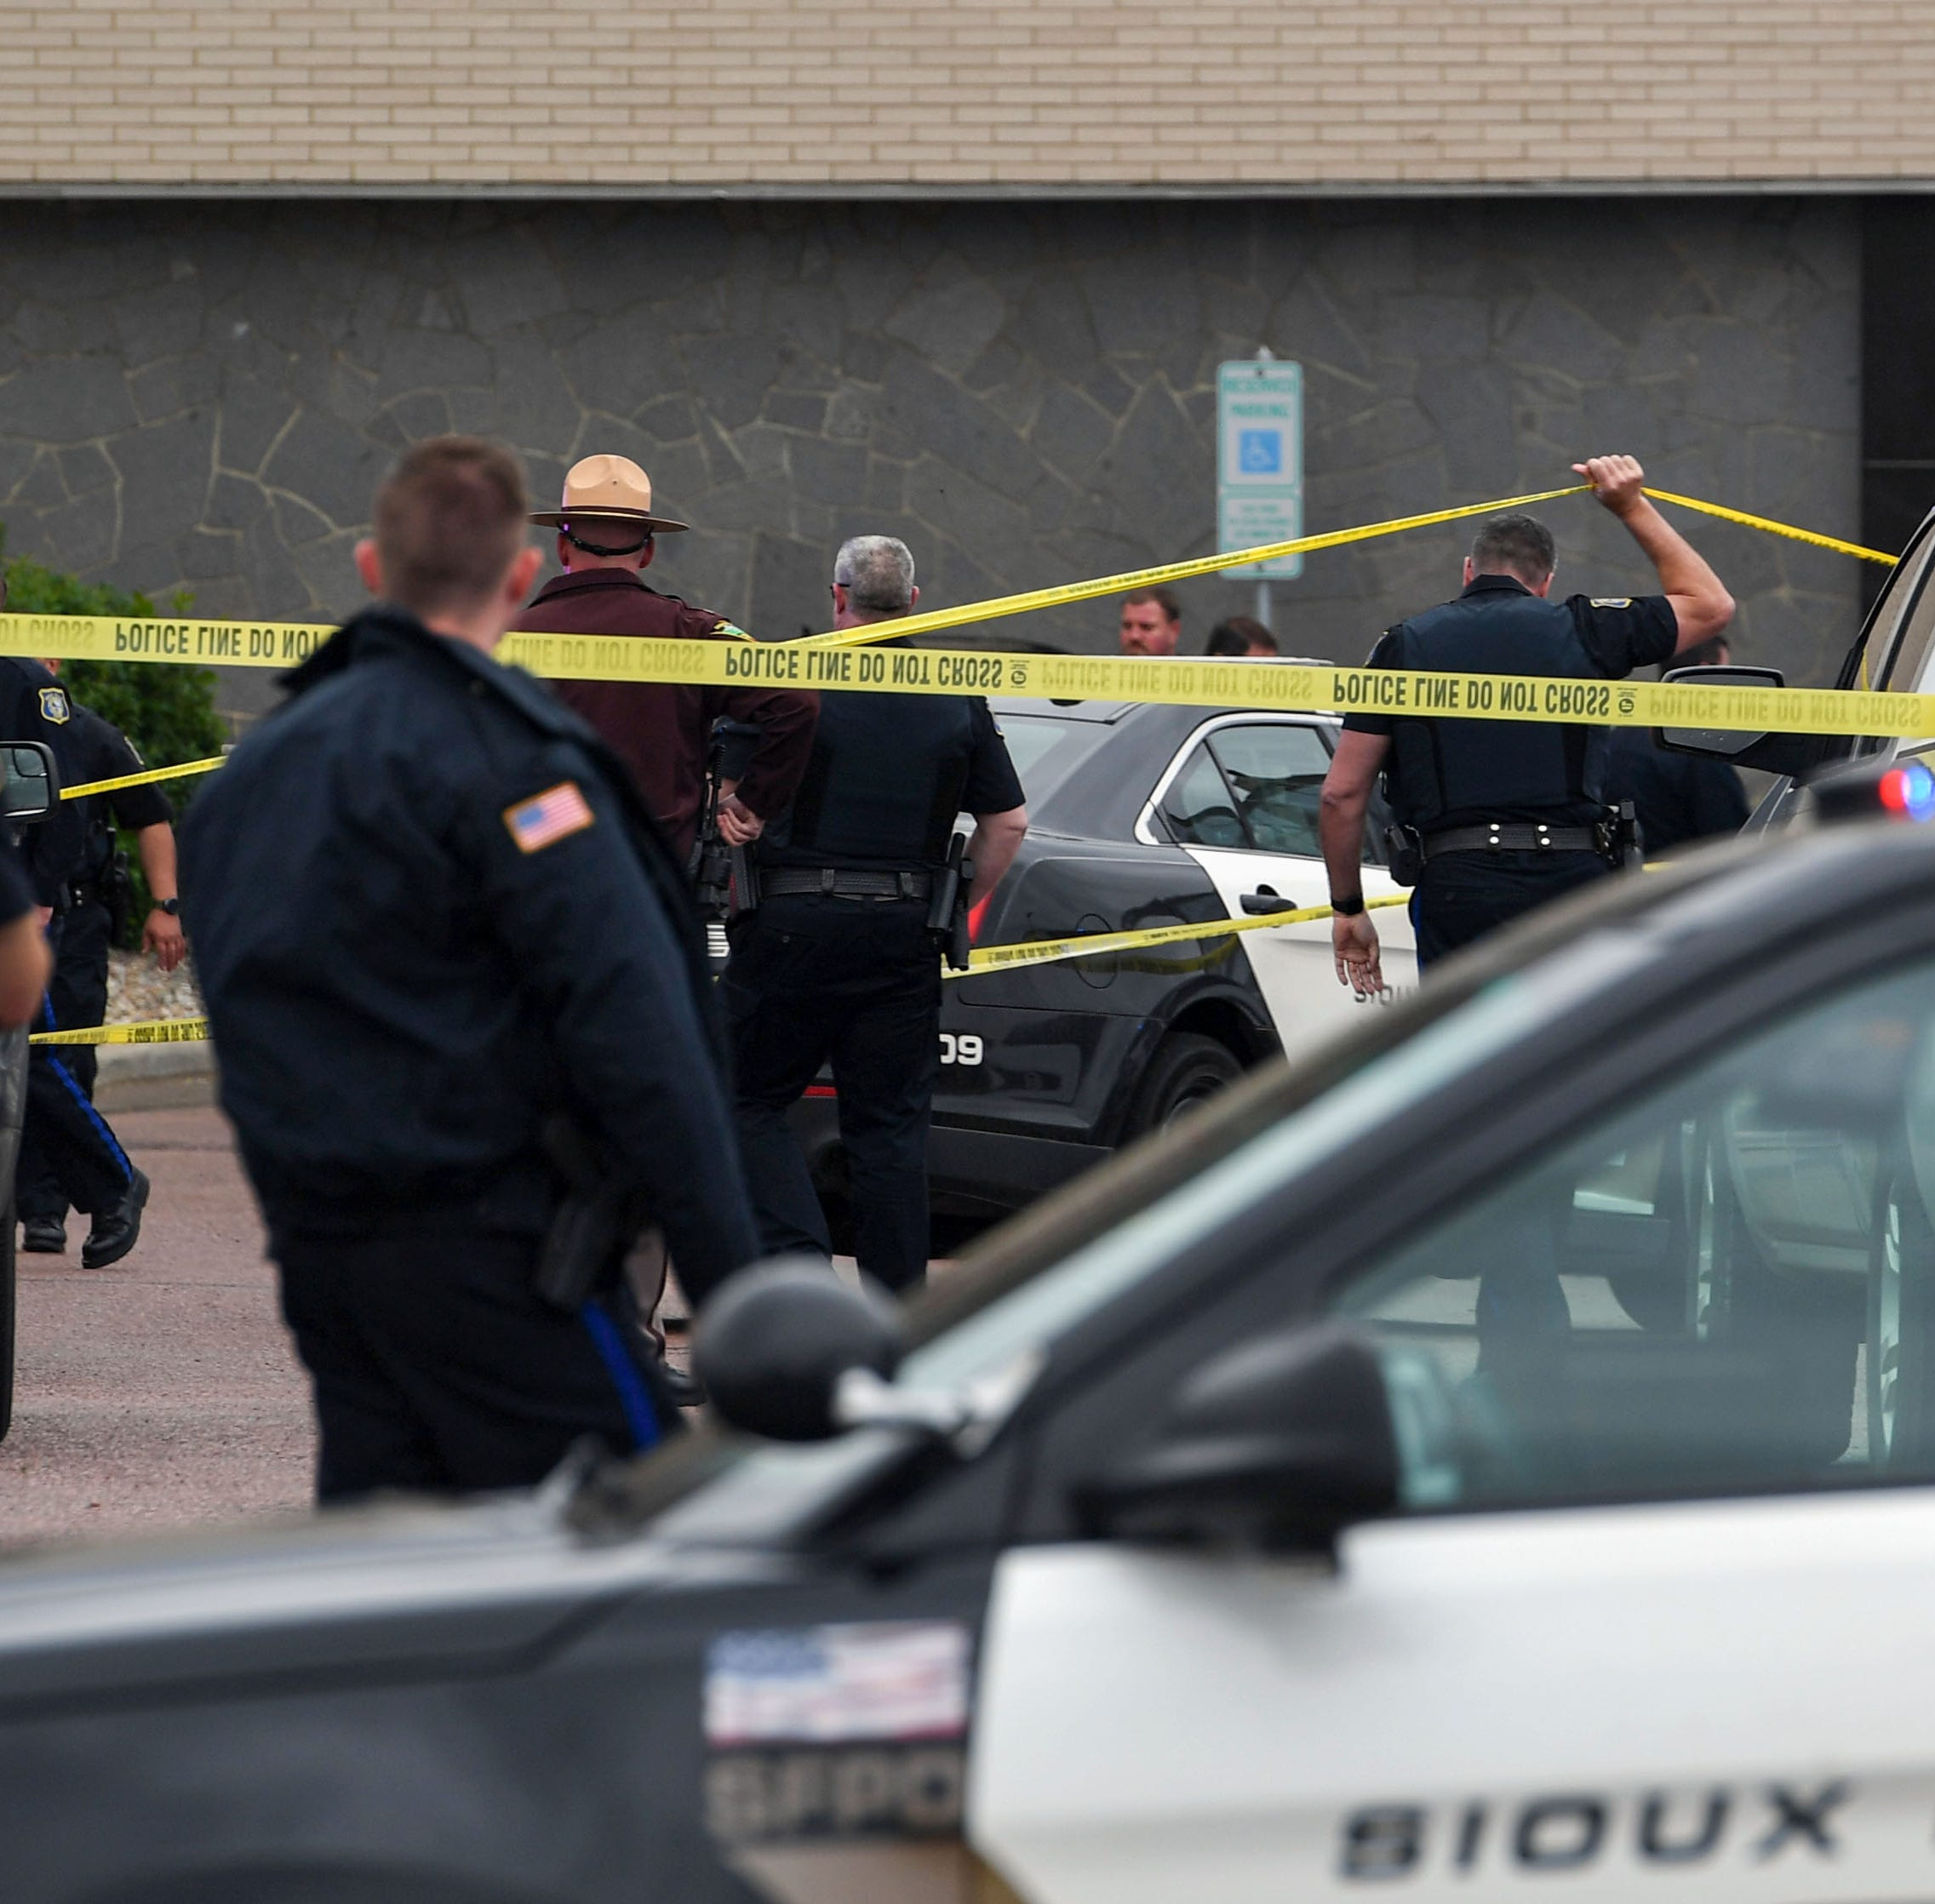 Authorities not yet identifying victim of Sioux Falls officer-involved shooting